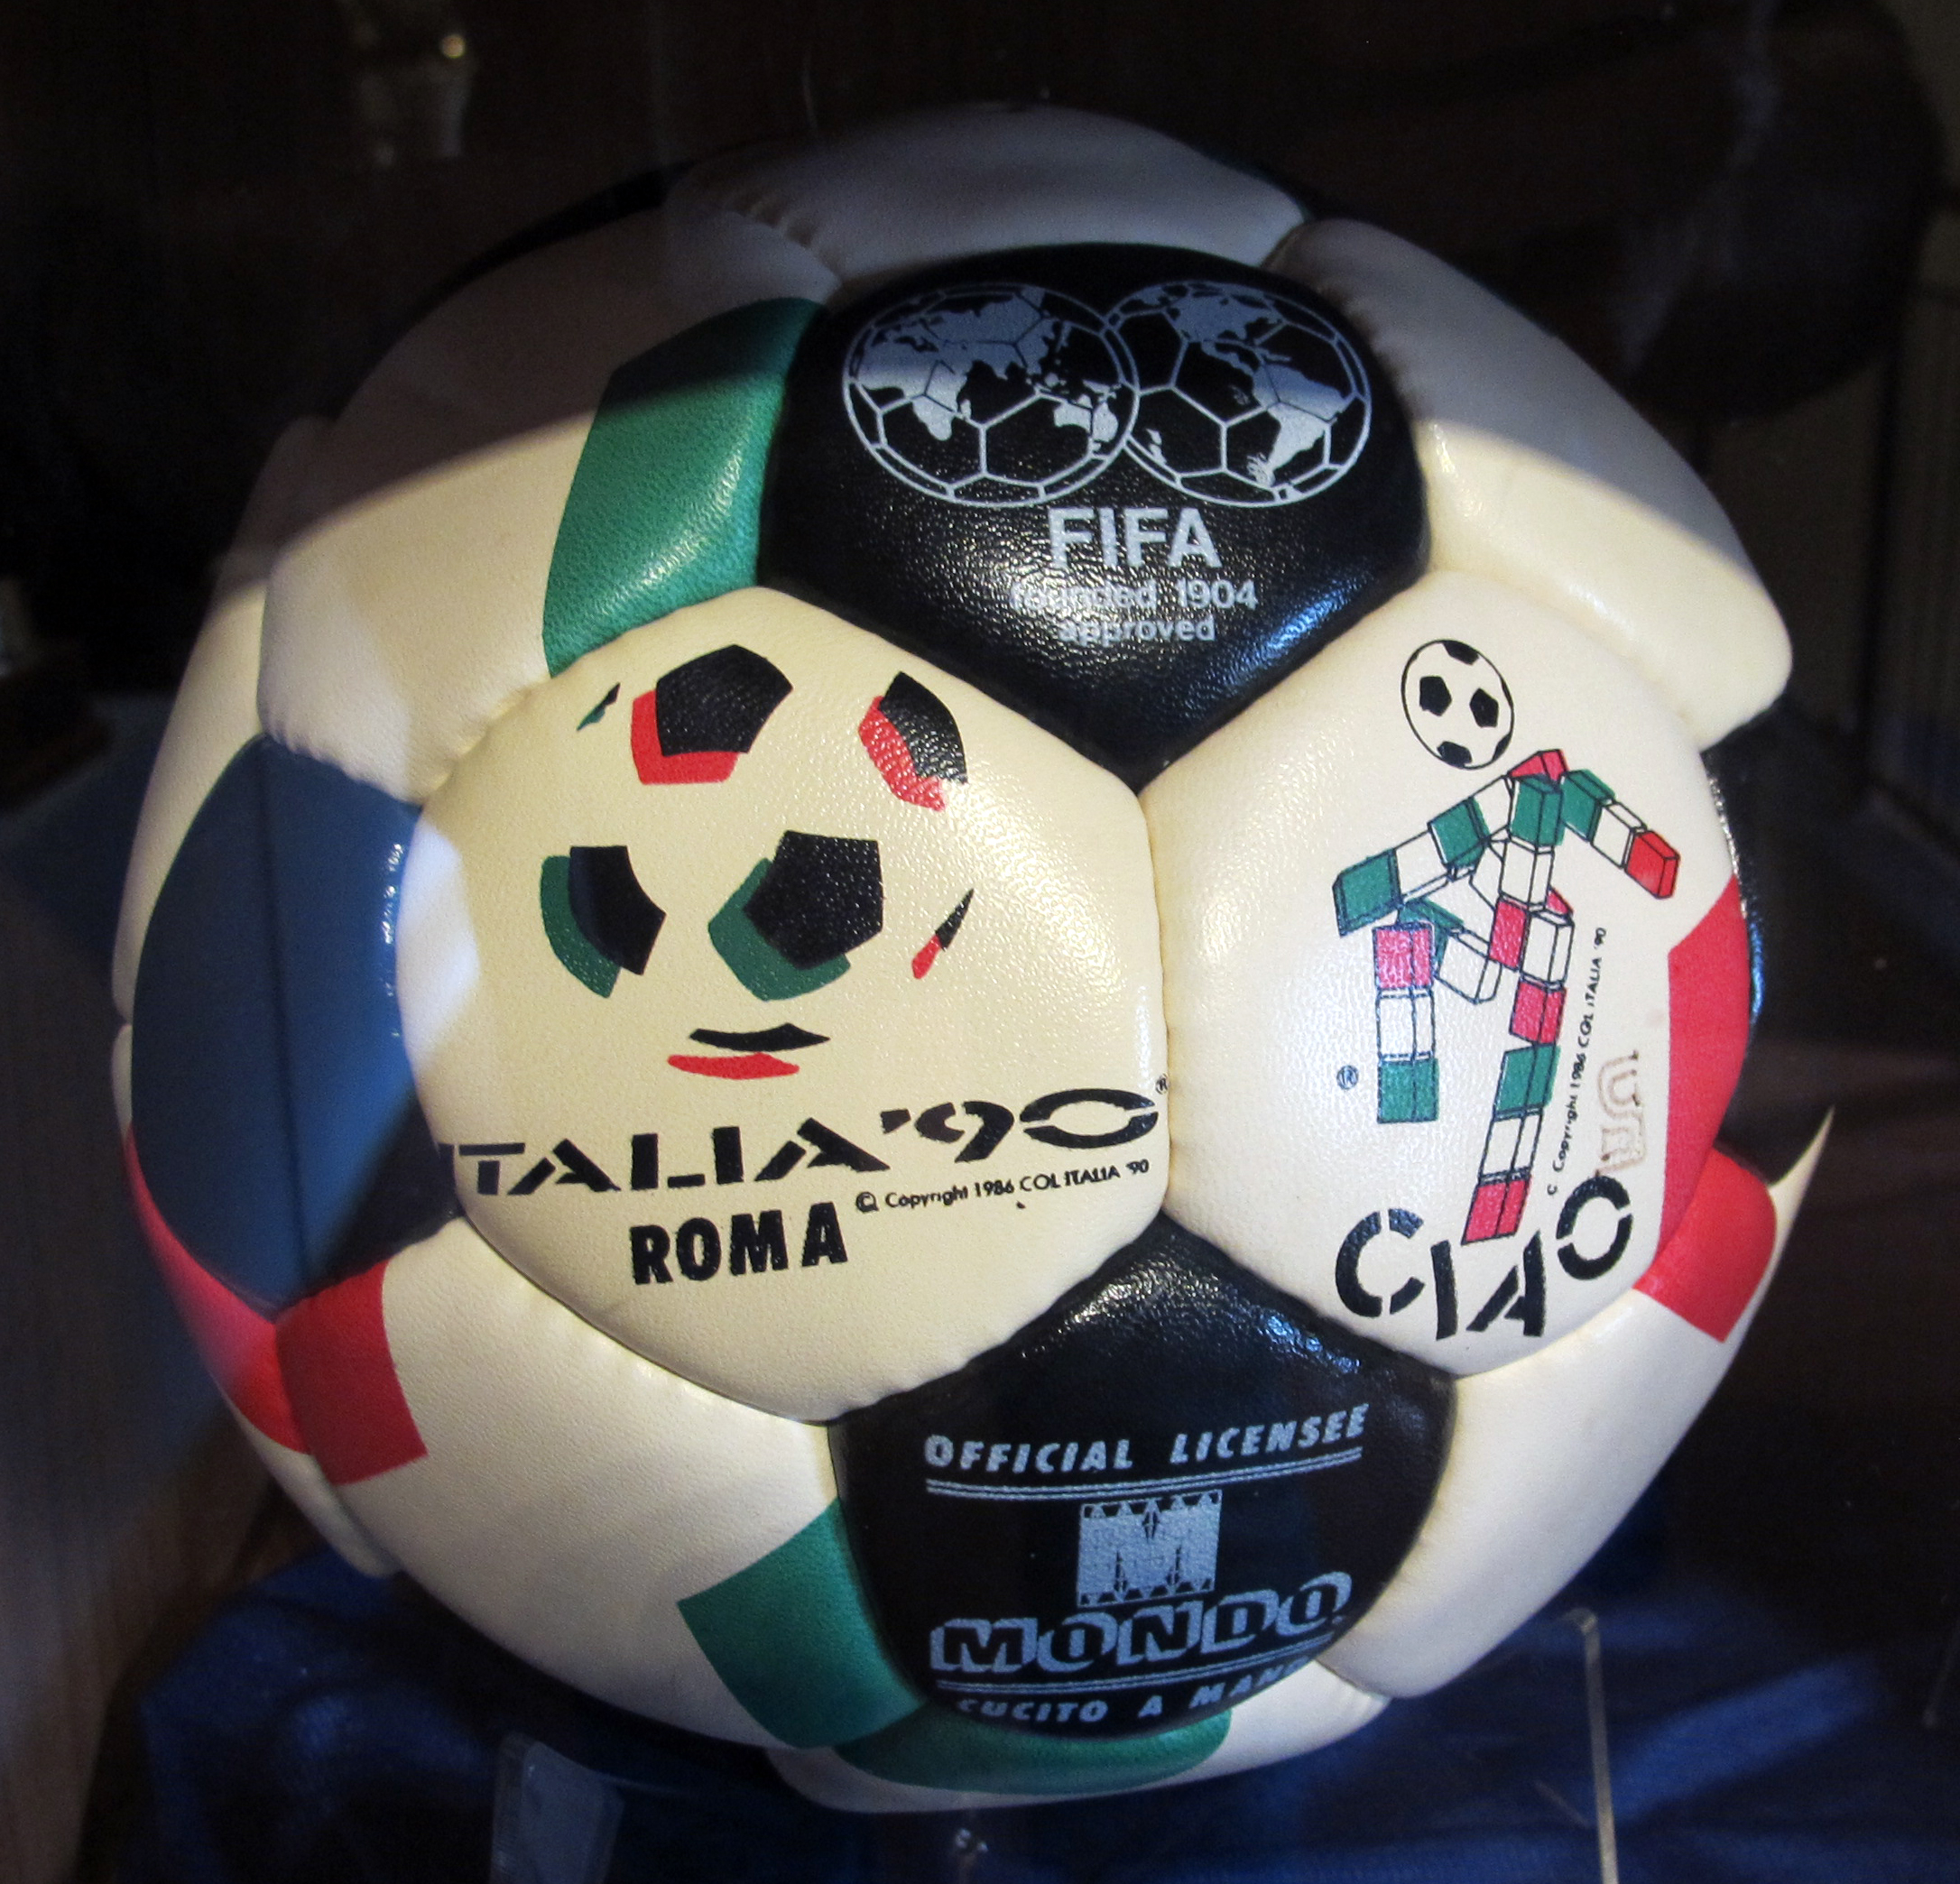 File:Official match ball in Rome.jpg Wikimedia Commons